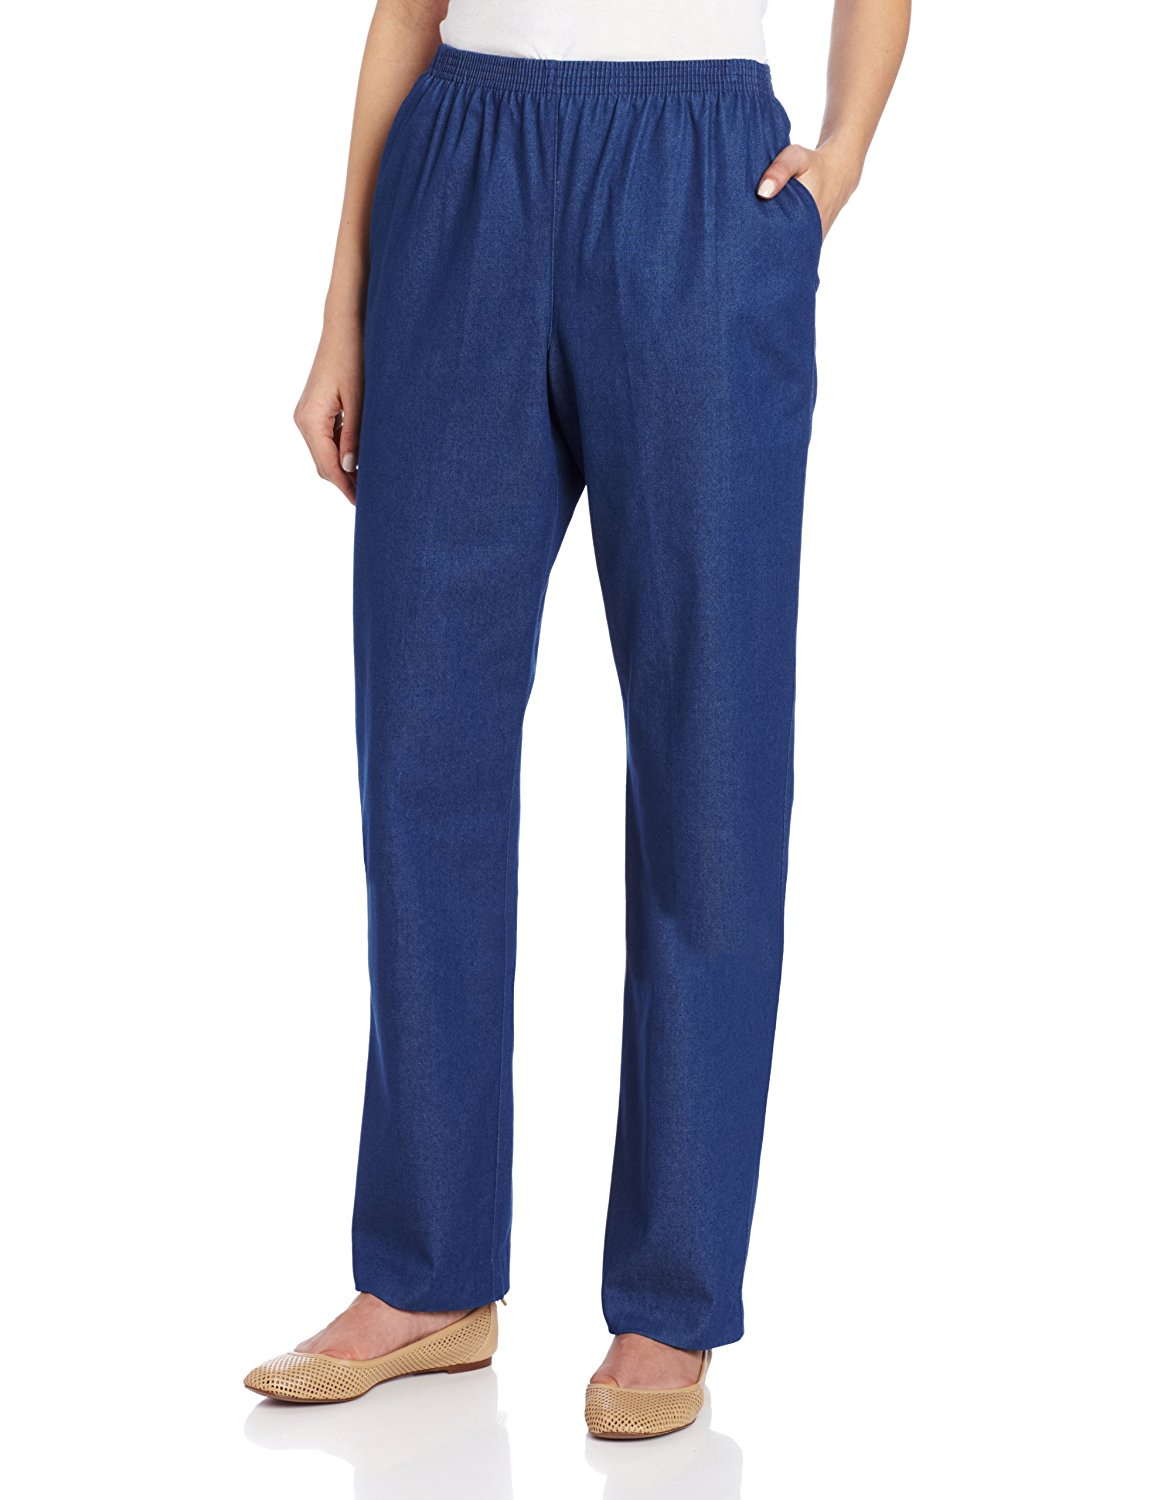 alfred dunner pants alfred dunner womenu0027s short length pant at amazon womenu0027s clothing store:  athletic aiemjih